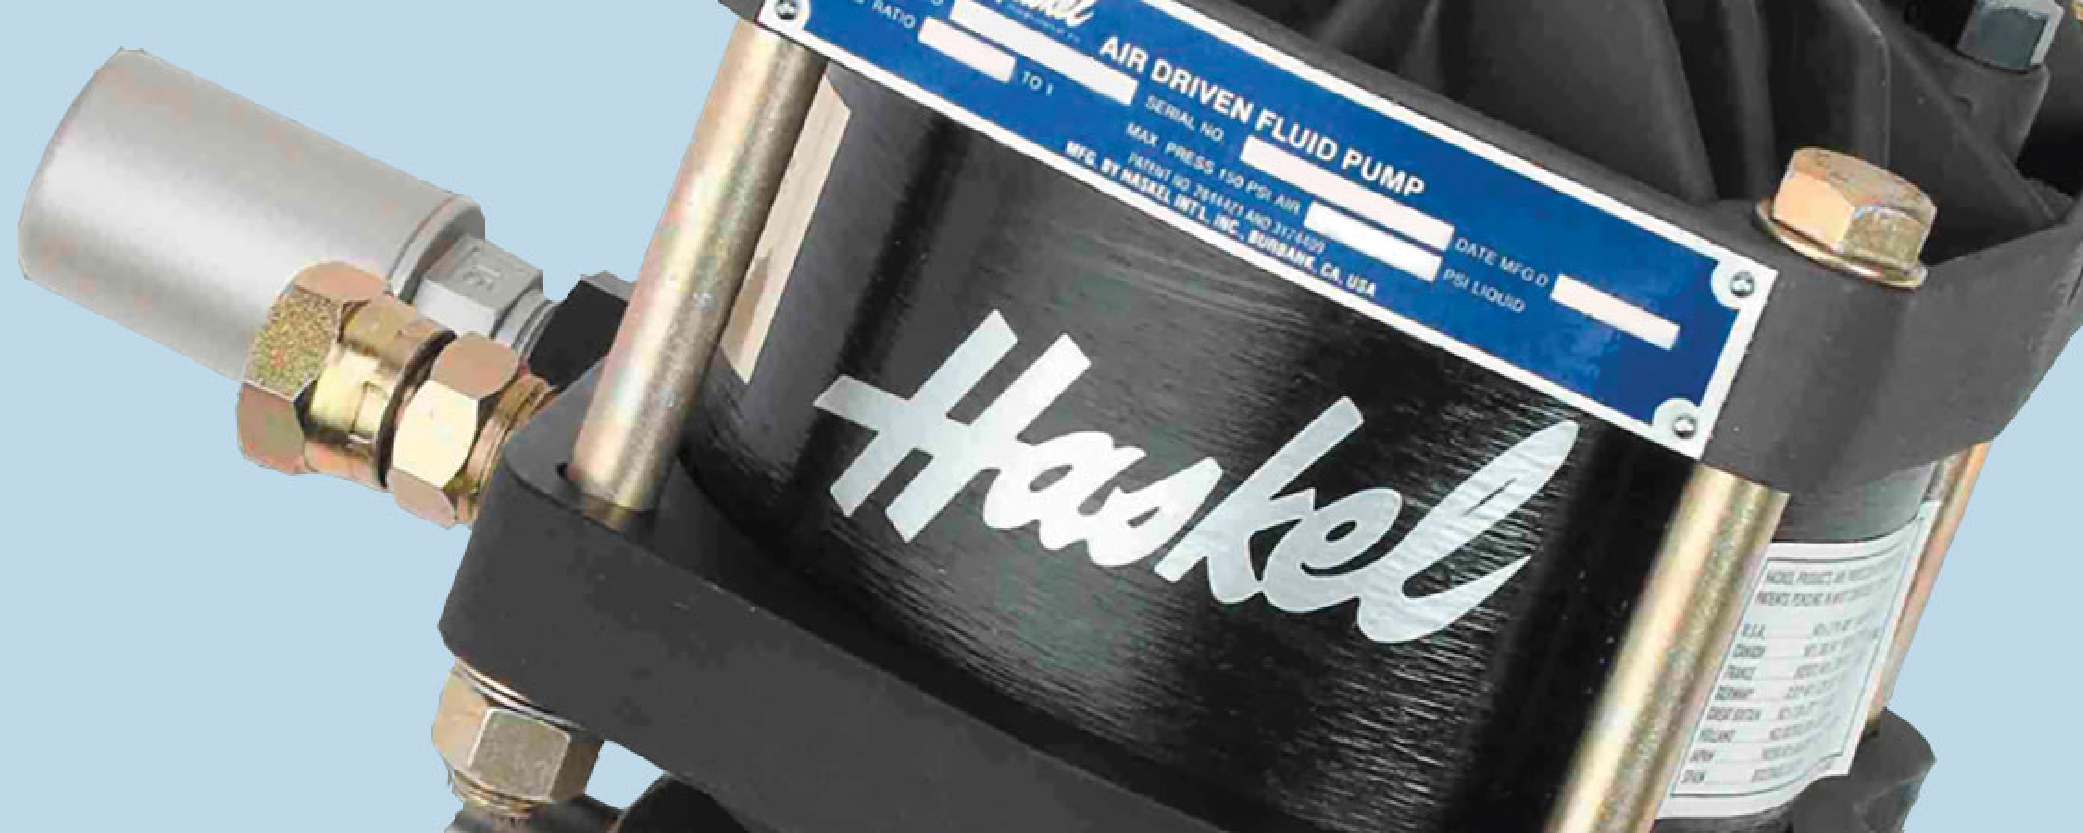 haskel fluid pump2